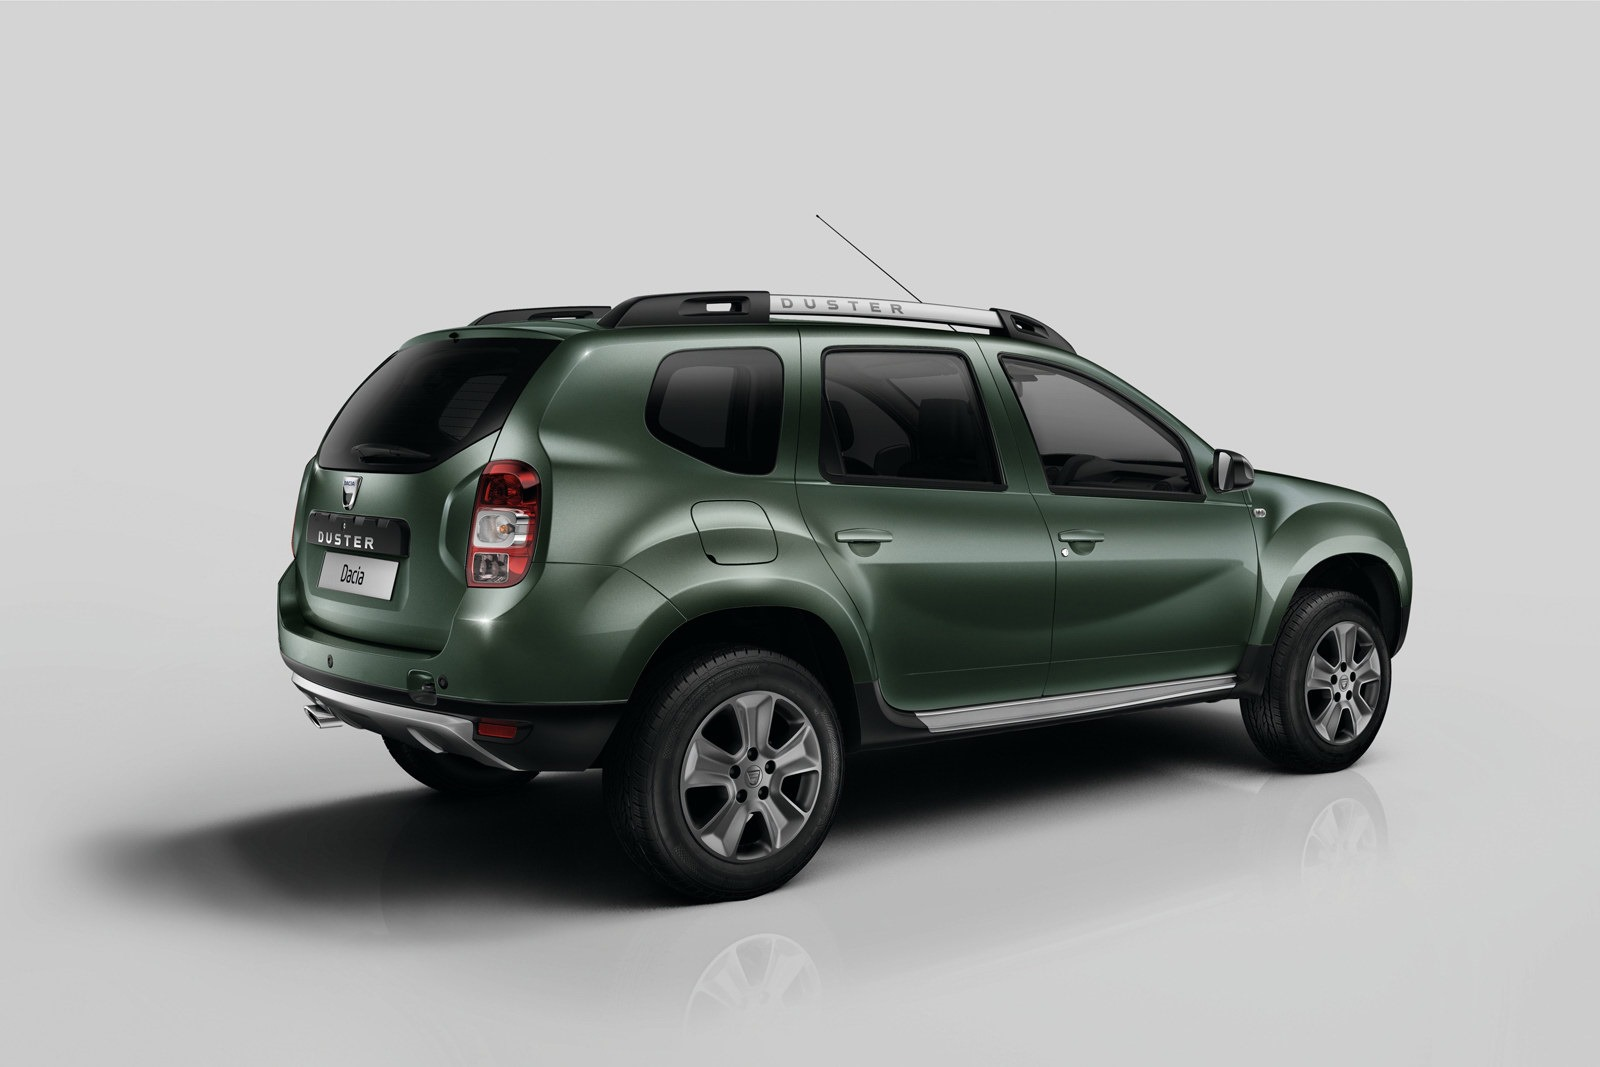 dacia duster technical specifications and fuel economy. Black Bedroom Furniture Sets. Home Design Ideas